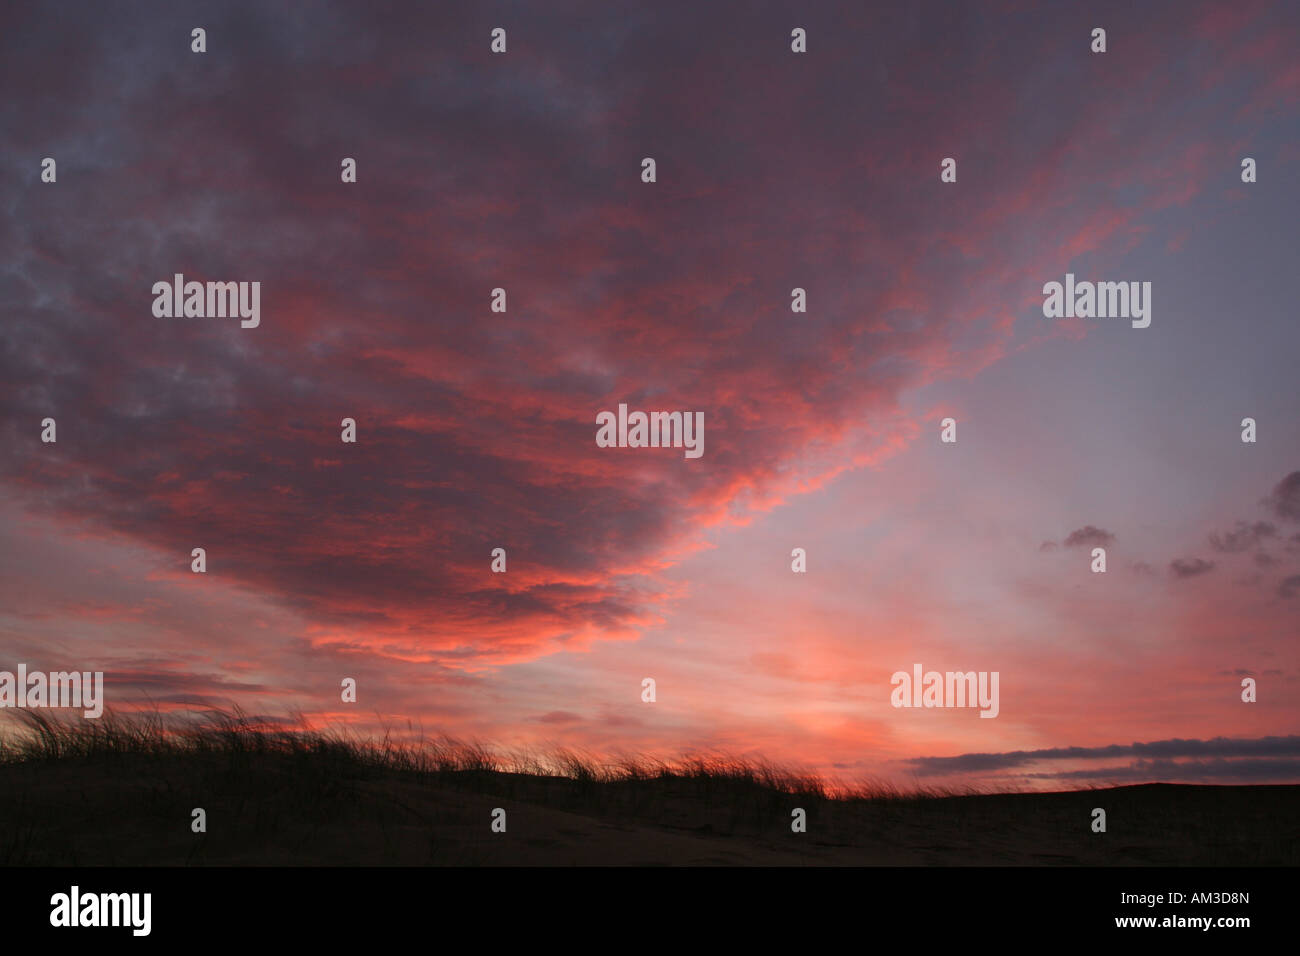 Red sky in the morning shepherds warning Stock Photo